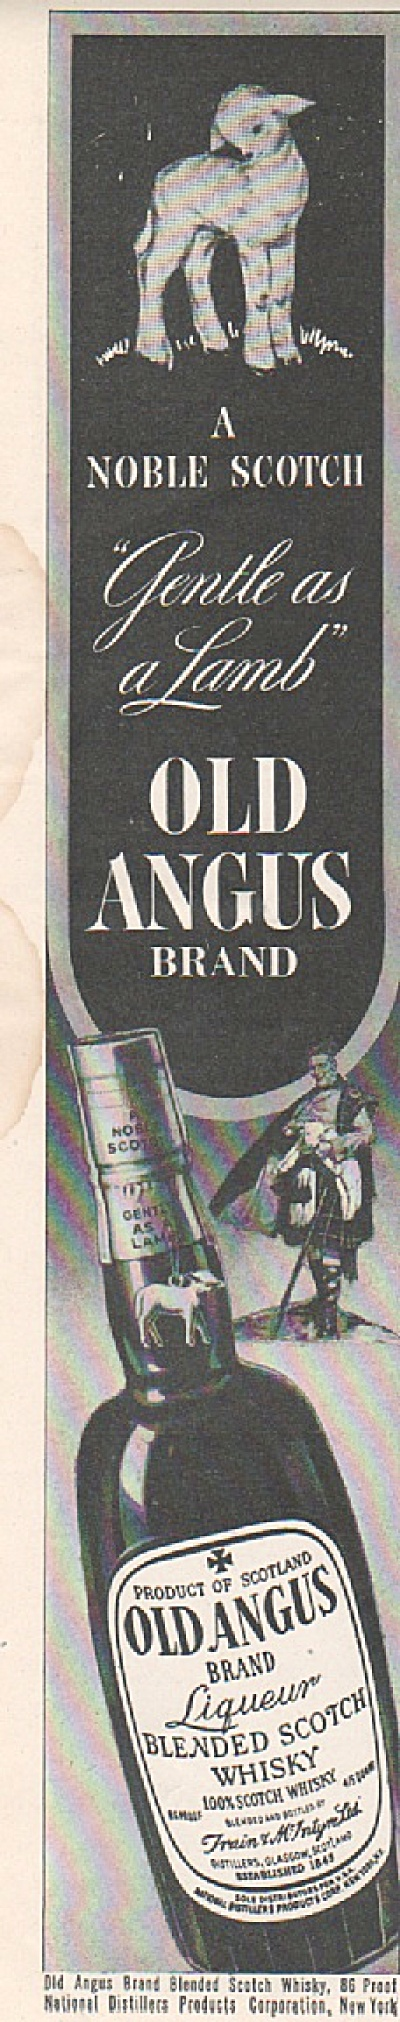 Old Angus blended scotch whisky ad 1946 (Image1)